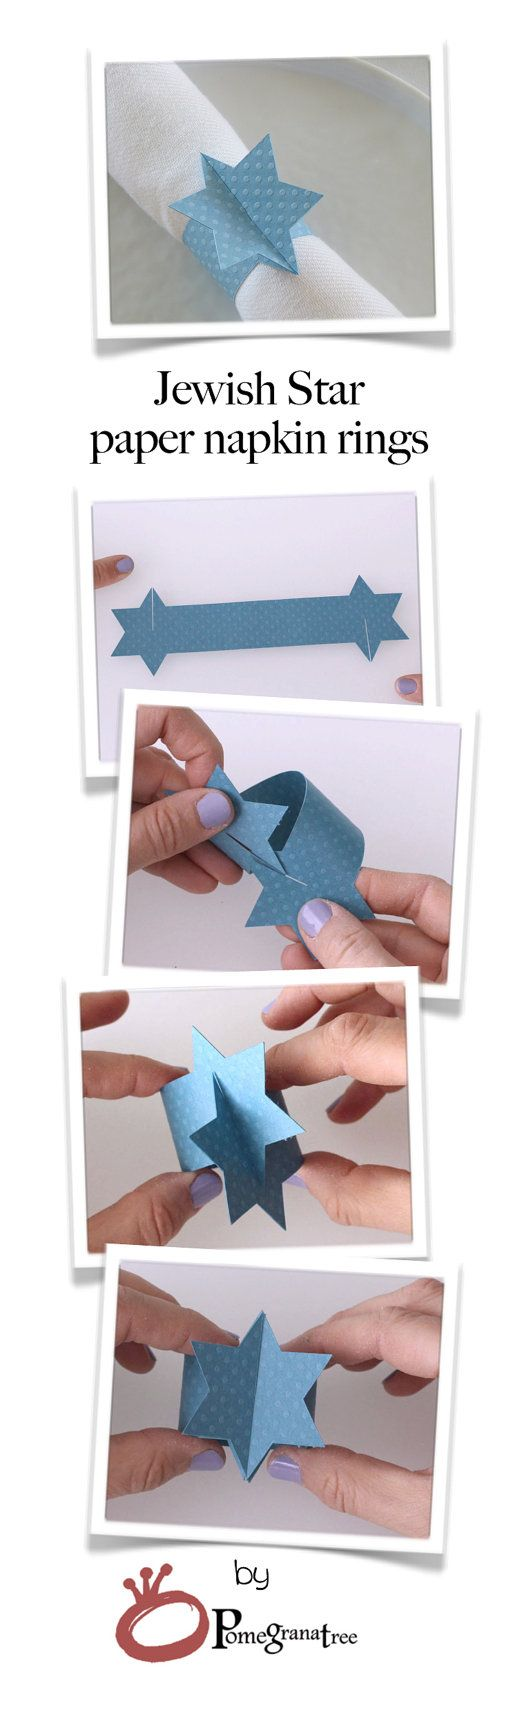 Jewish Star Paper Napkin Ring, Magen David, Bar Mitzvah Table Decor, Hanukah Table Decor, Jewish Holiday Decor, Set of 10, Royal Blue MD19 These Jewish Star shaped napkin rings are cut out of premium paper. These napkin rings are a beautiful added touch for your special occasion and perfect for decorating any holiday table. Napkin rings are sold in sets of TEN. Napkin rings are shipped flat. Easy assembly - no glue or tape needed! Size: Flat: 7.1 / 18cm Assembled ring: approximately 1.75 ...